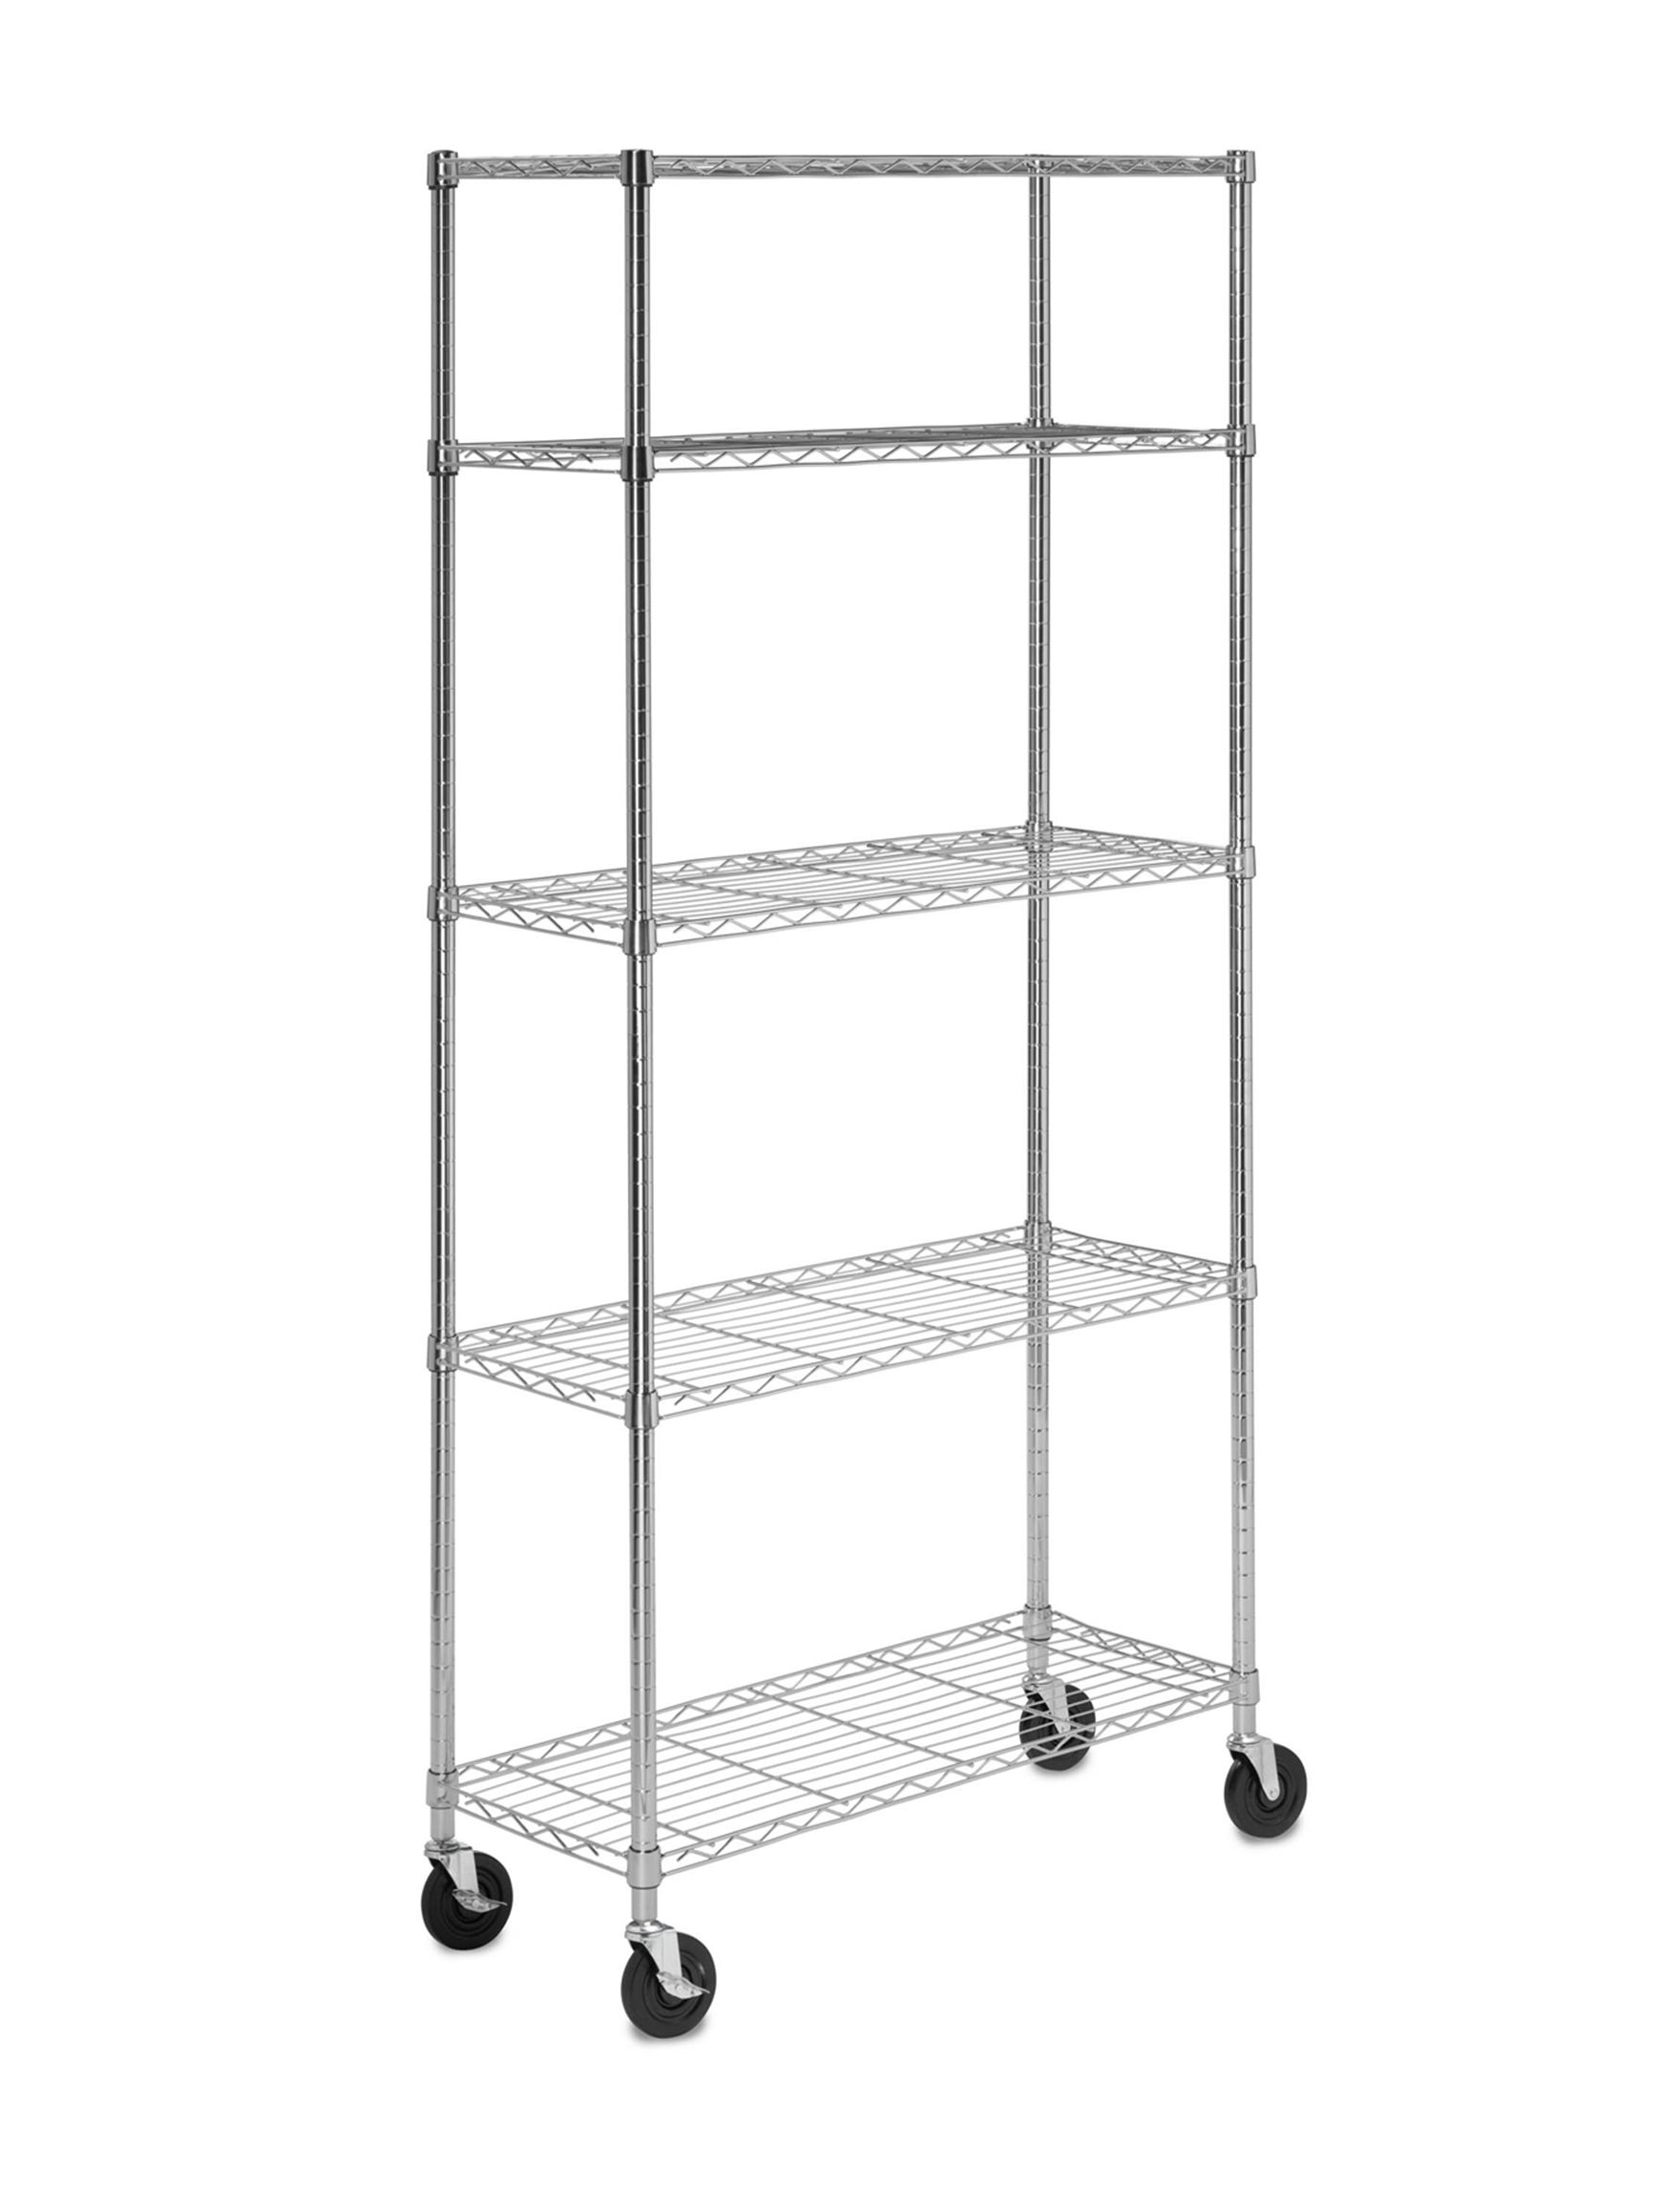 Honey-Can-Do International Chrome Storage Shelves Storage & Organization